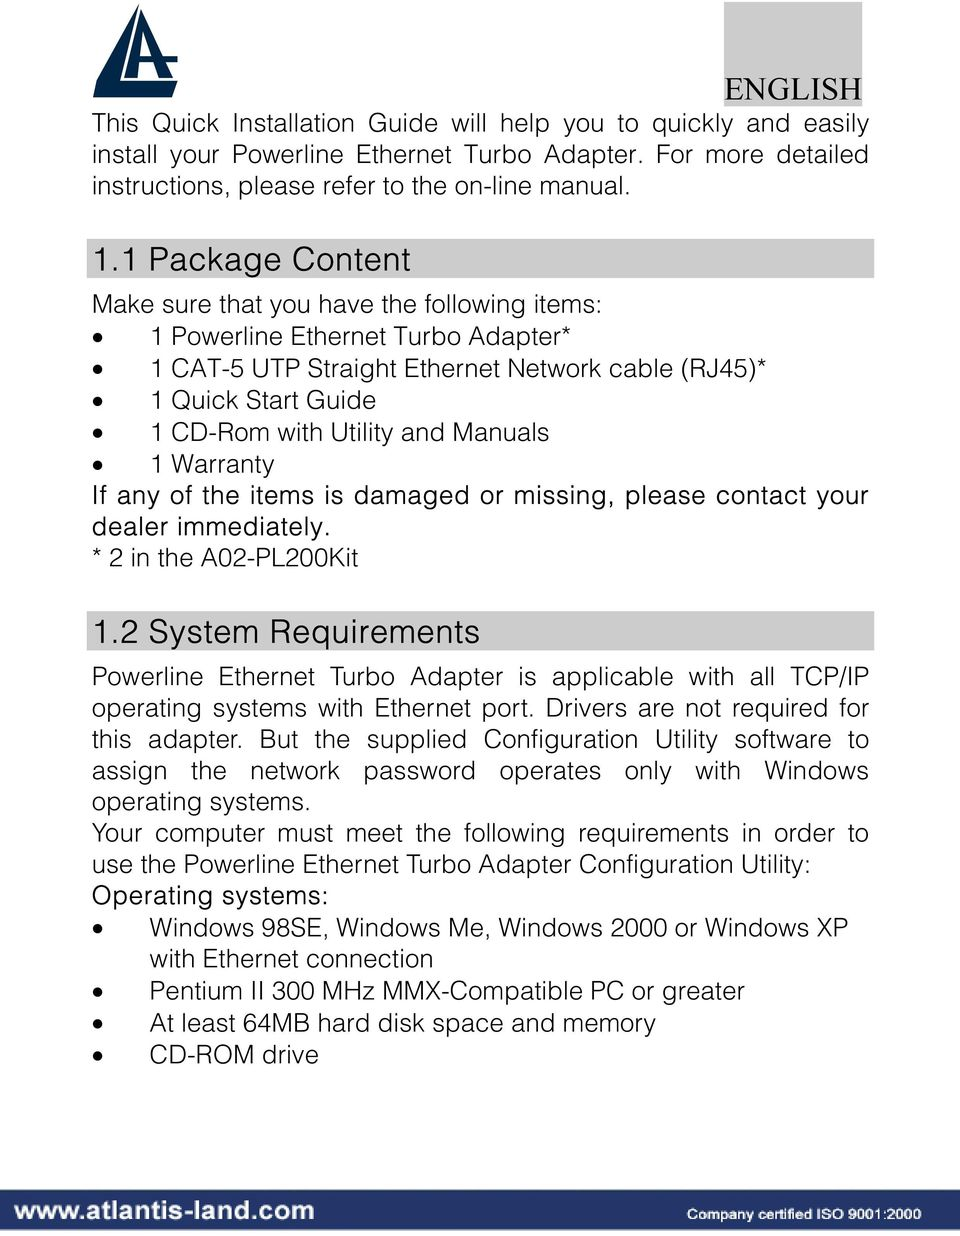 Manuals 1 Warranty If any of the items is damaged or missing, please contact your dealer immediately. * 2 in the A02-PL200Kit 1.